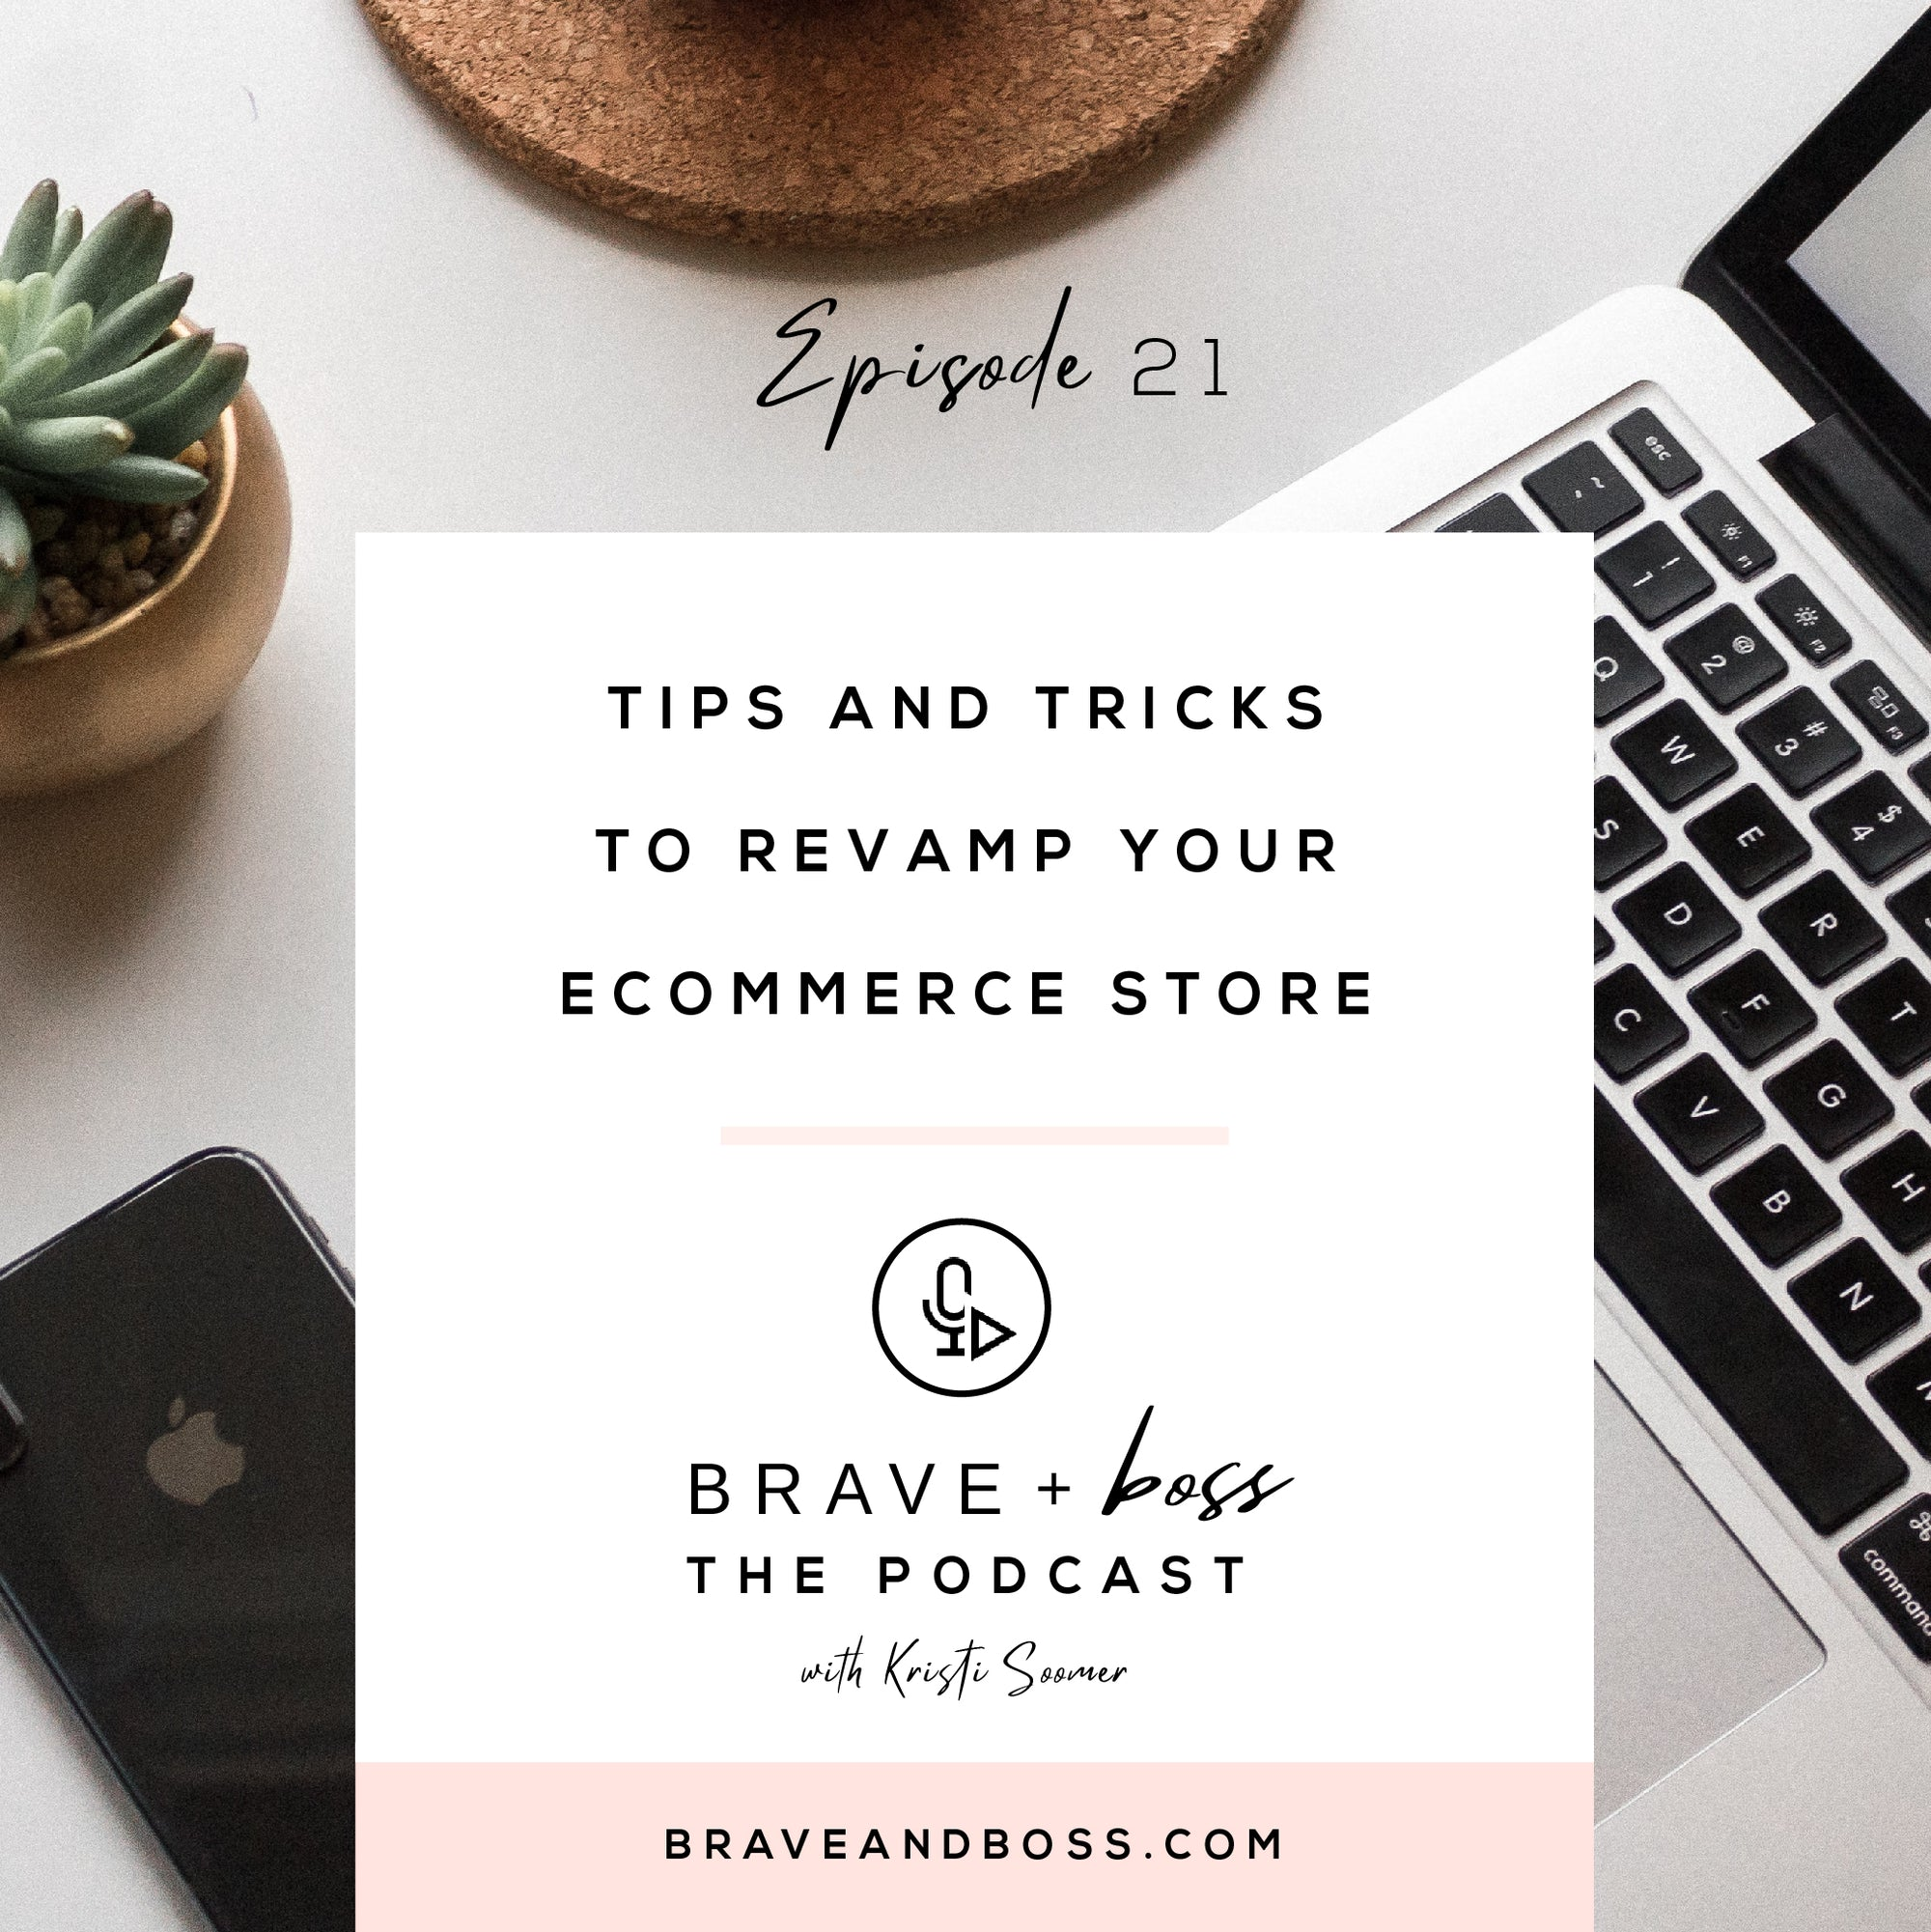 Tips and Tricks to Revamp your eCommerce Store